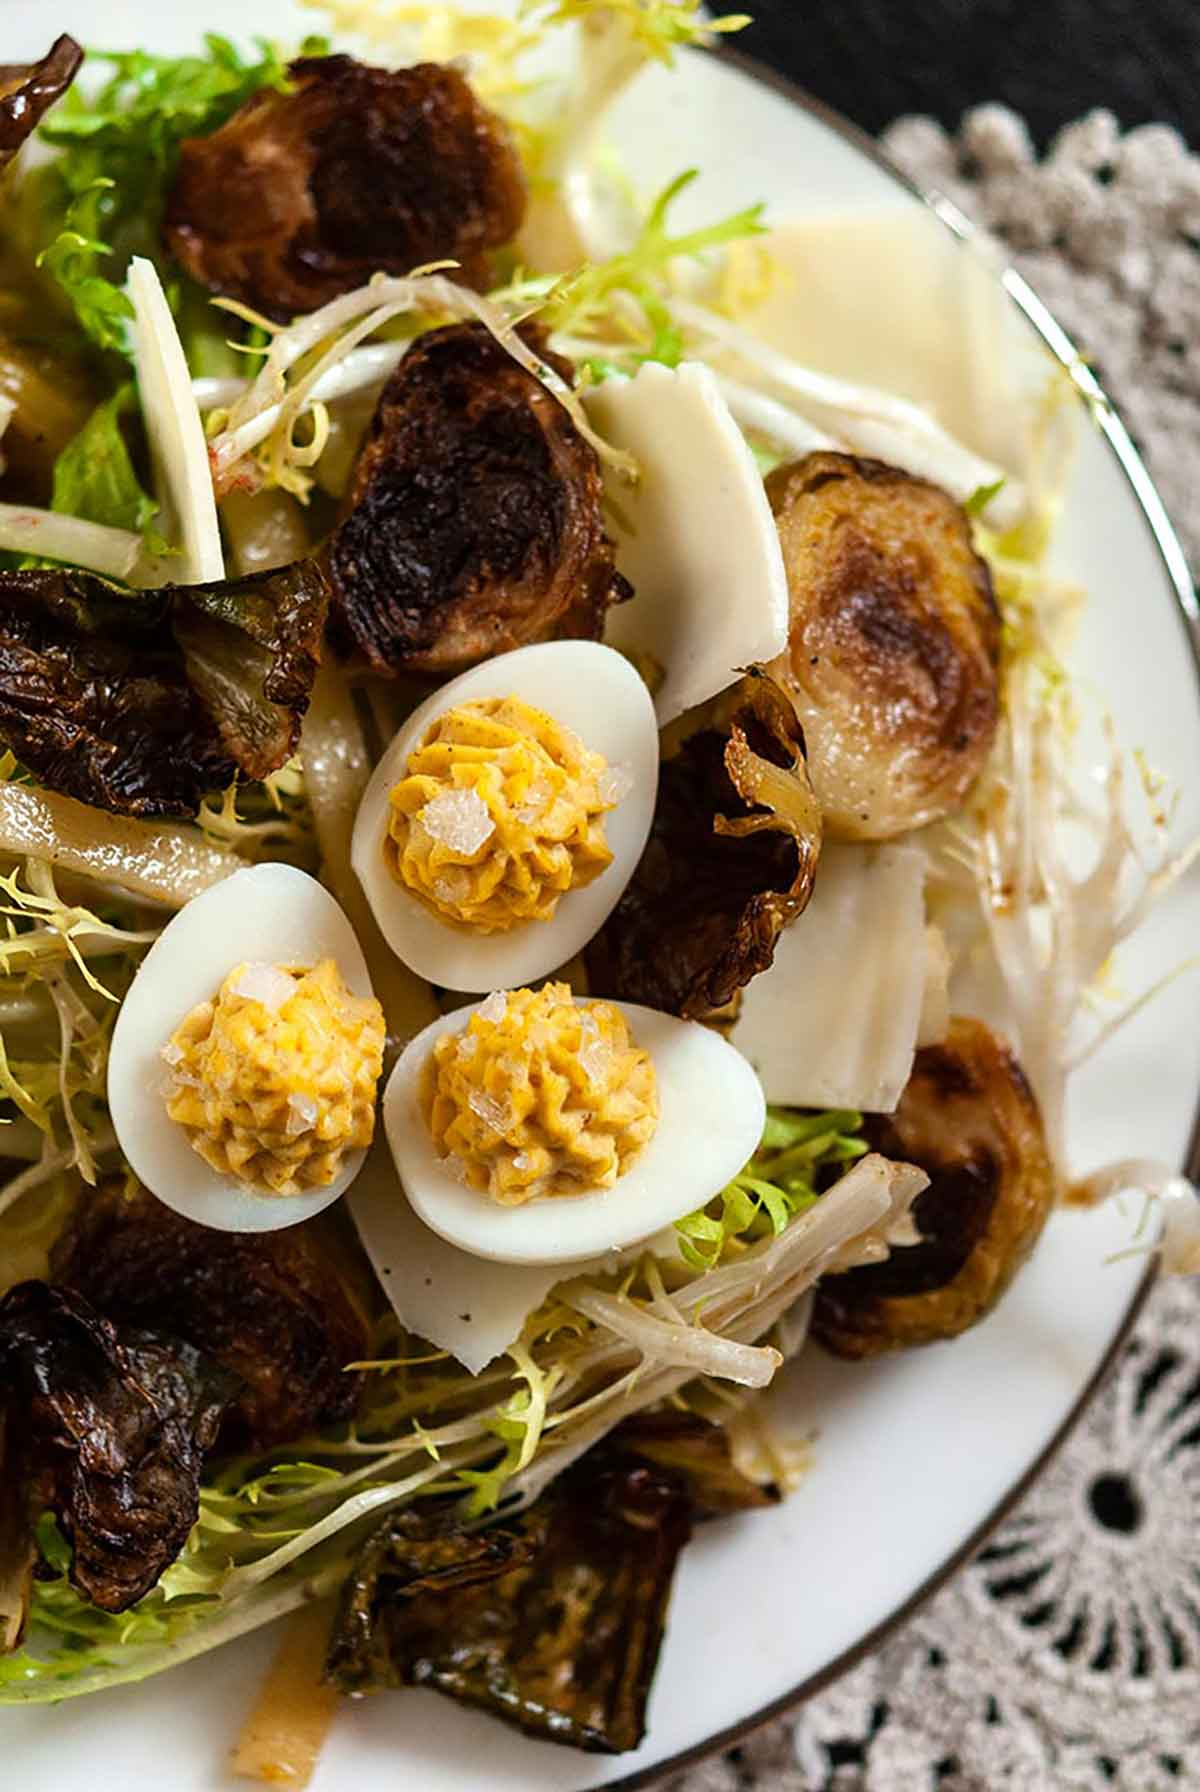 A plate of Brussels sprouts salad topped with quail deviled eggs.